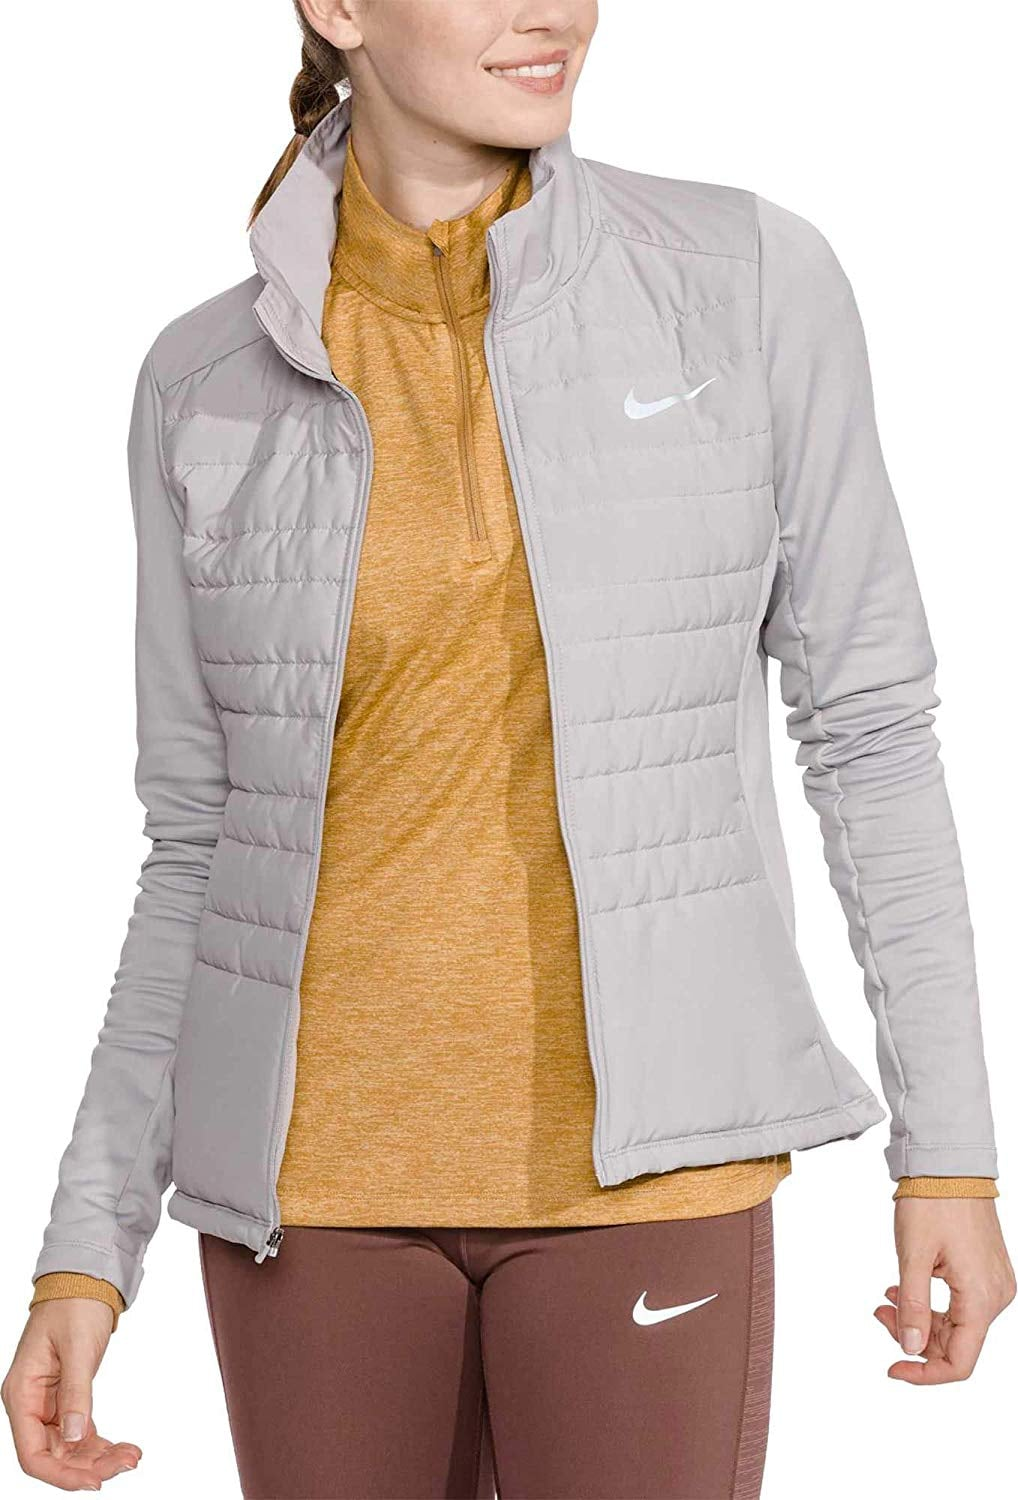 Algebraico pastor árabe  Nike Women's Essential Running Jacket | The 35 Hottest Fitness Items You  Can Buy on Amazon — From Sneakers to Weights | POPSUGAR Fitness Photo 20